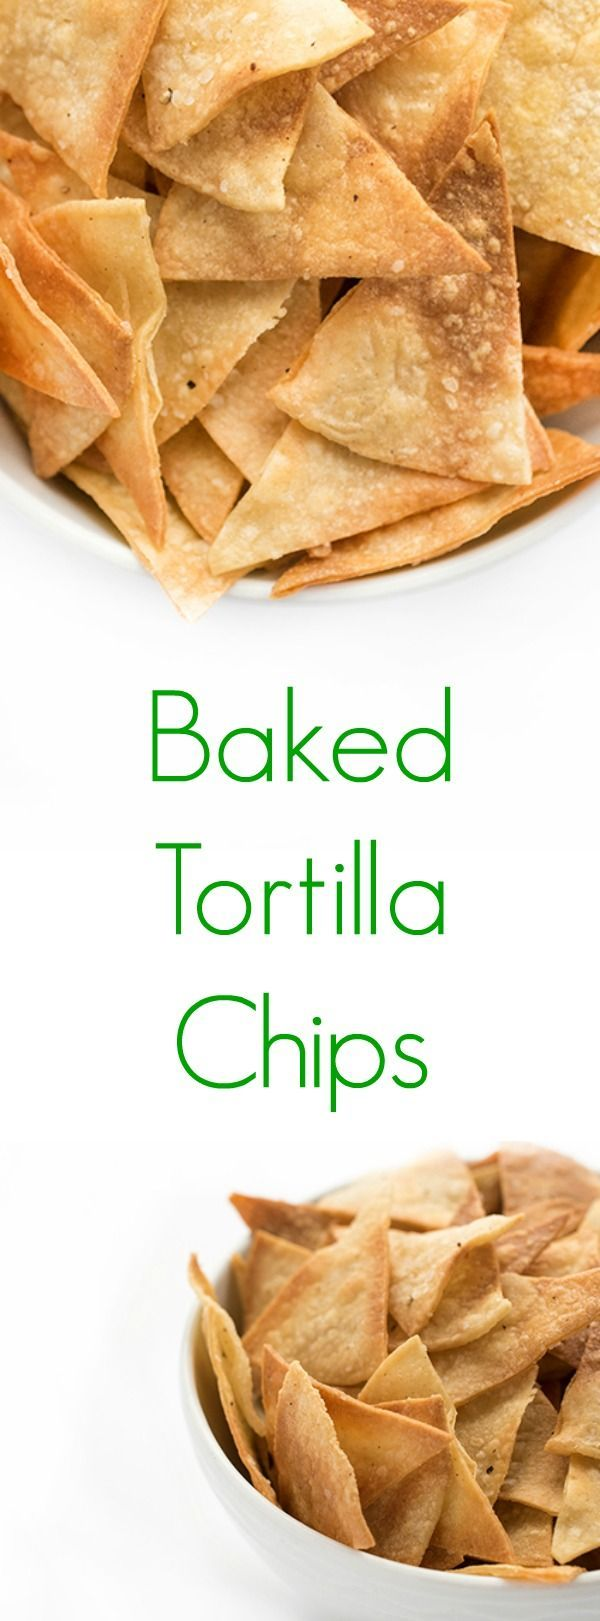 The ultimate healthy snack recipe, these baked corn tortilla chips are crunchy, salty and easy to make at home!